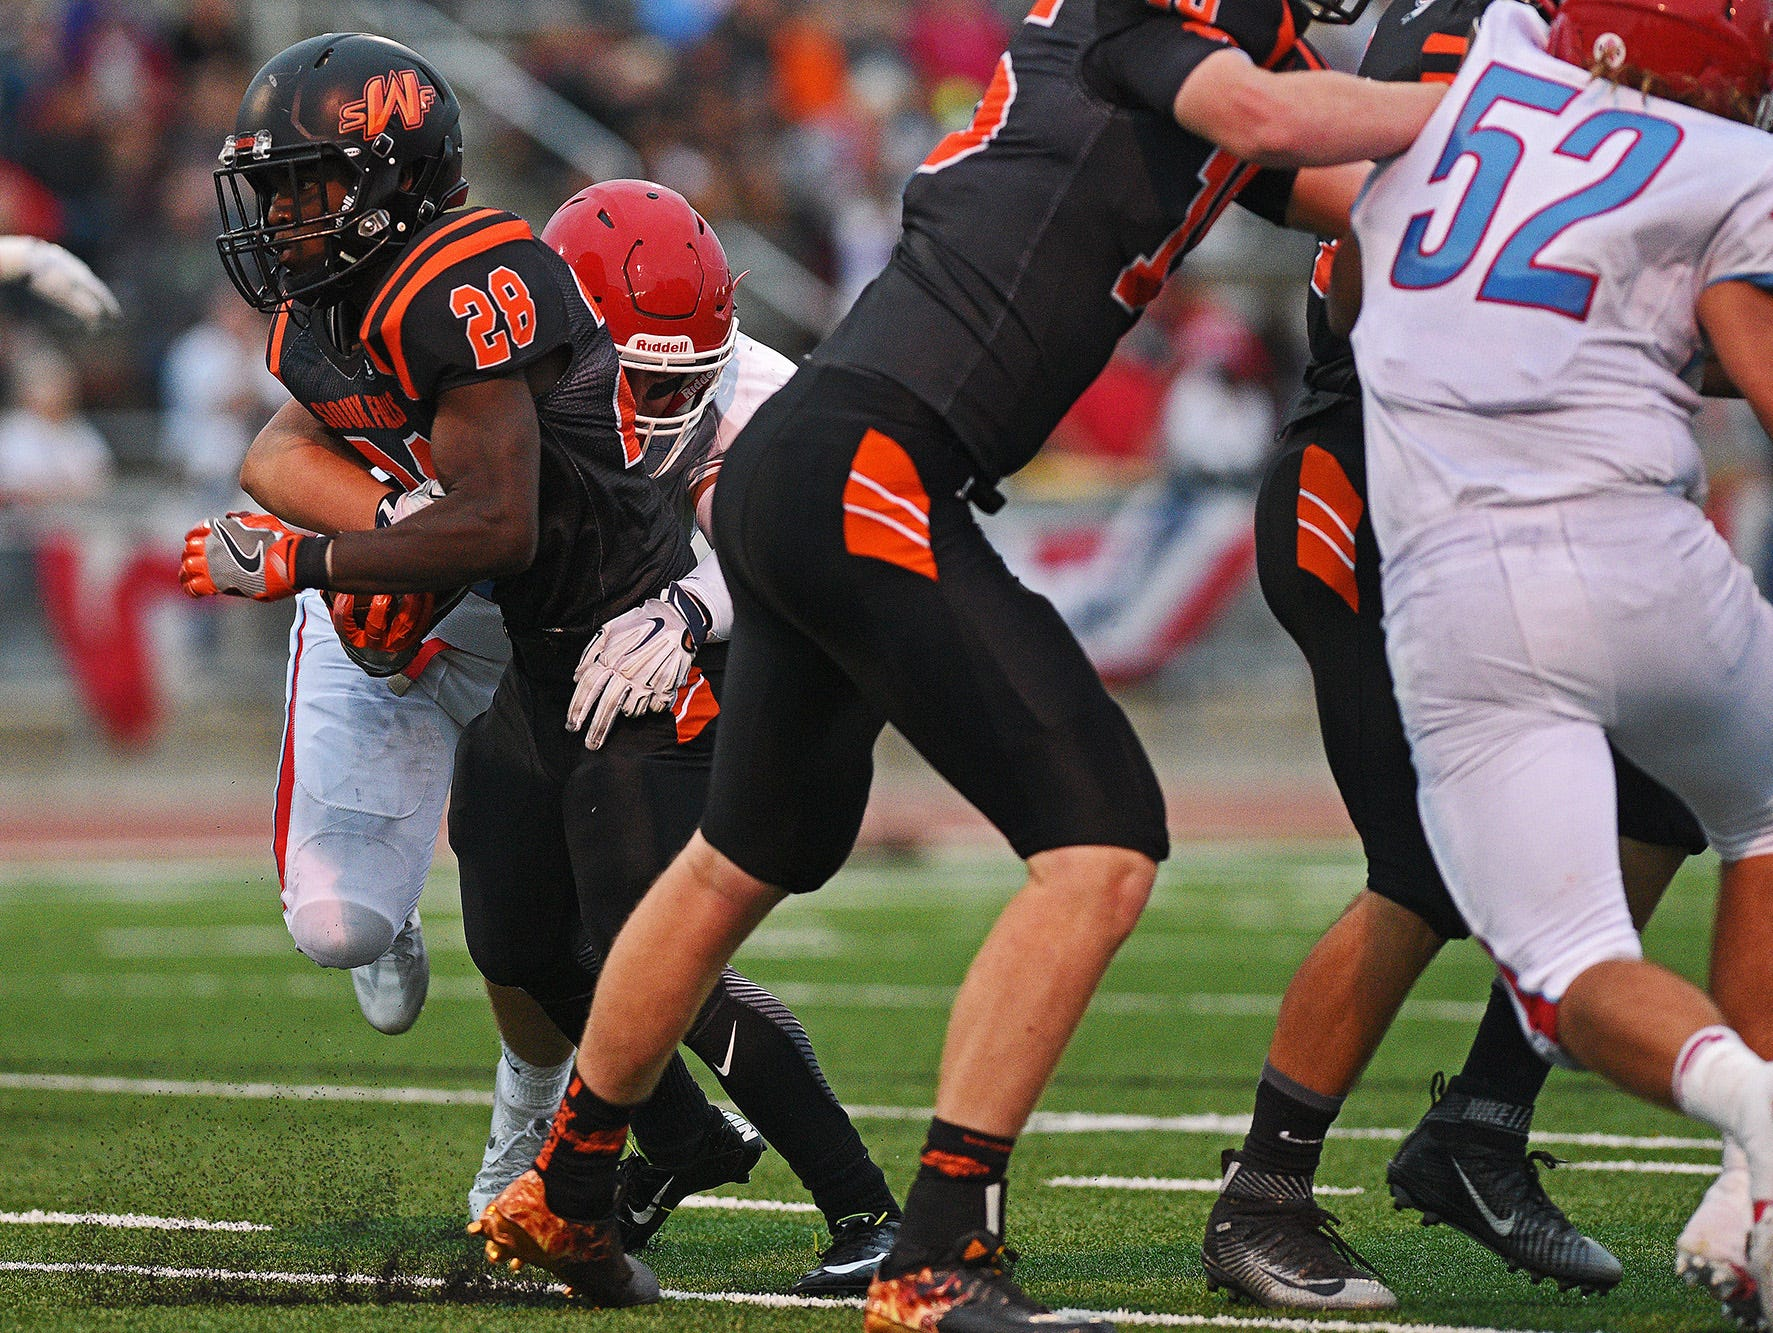 Washington's Tupac Kpeayeh (28) is brought down by Lincoln's Xavier Kolb (44) during a Presidents Bowl game at Howard Wood Field Saturday, Sept. 3, 2016, in Sioux Falls.